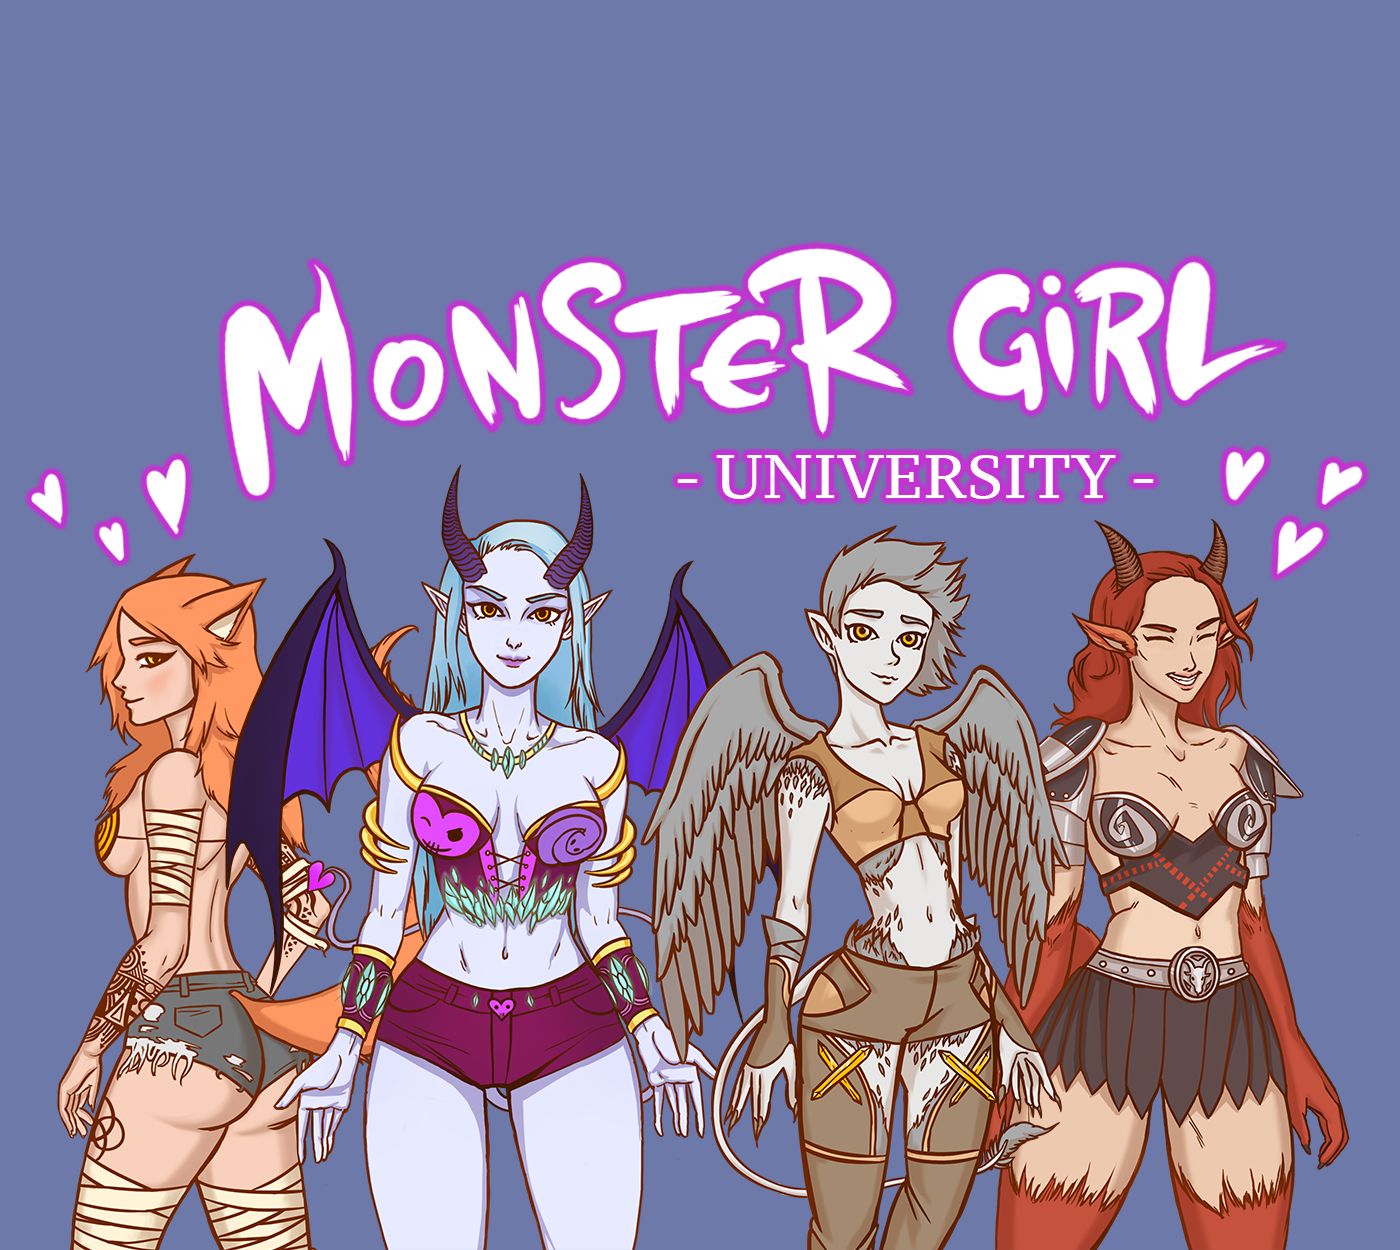 Monster Girl University